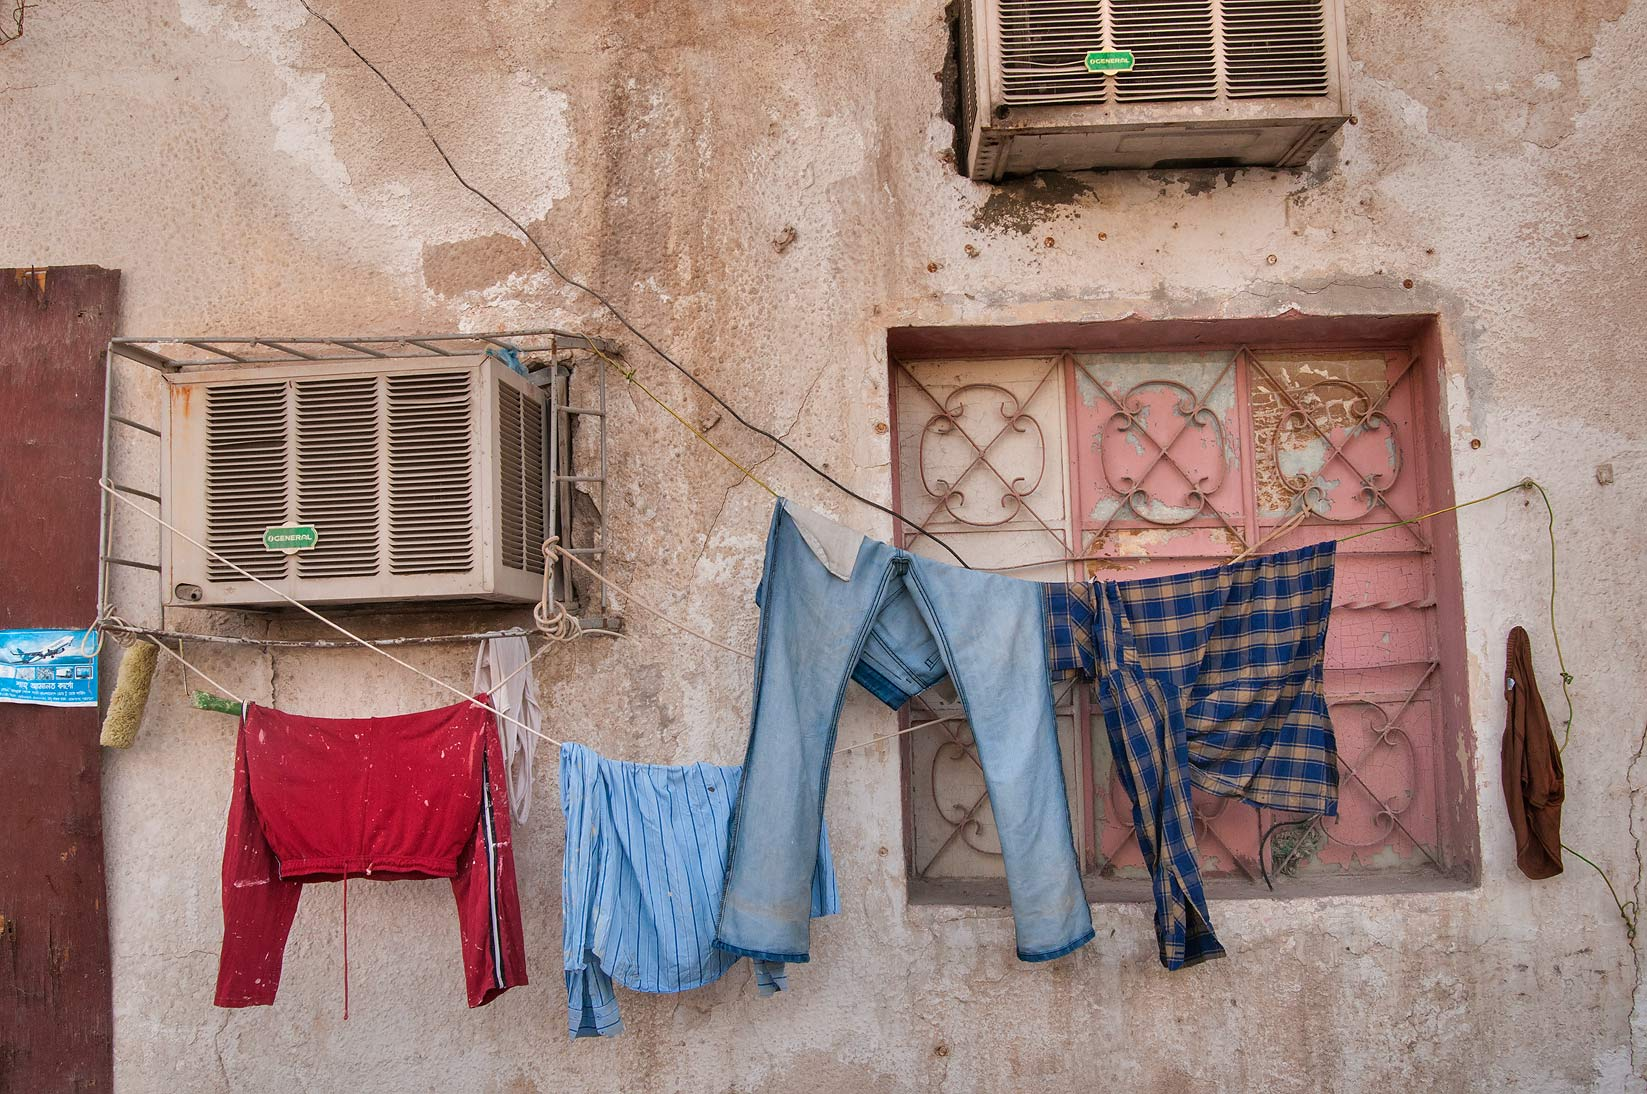 Drying laundry at Al Jassasiya St., Musheirib area. Doha, Qatar